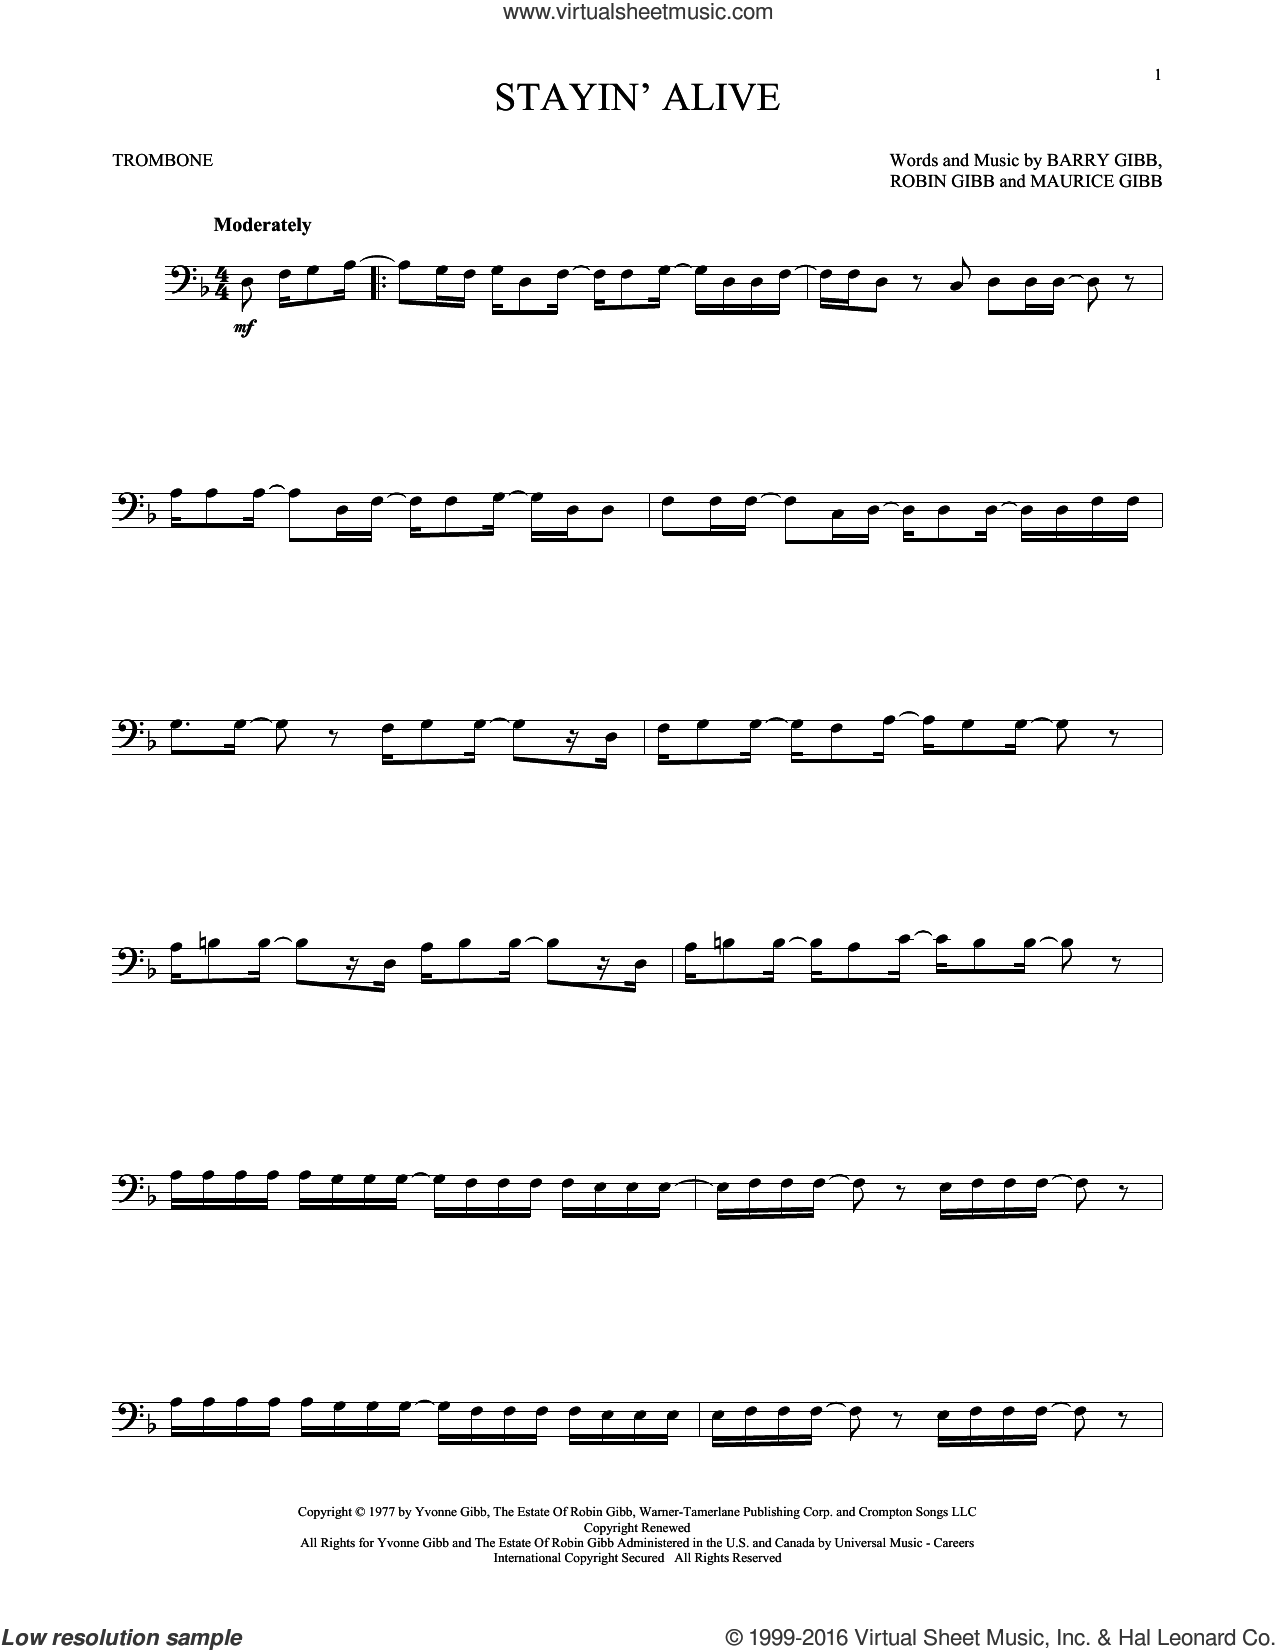 Stayin' Alive sheet music for trombone solo by Barry Gibb, Bee Gees, Maurice Gibb and Robin Gibb, intermediate skill level